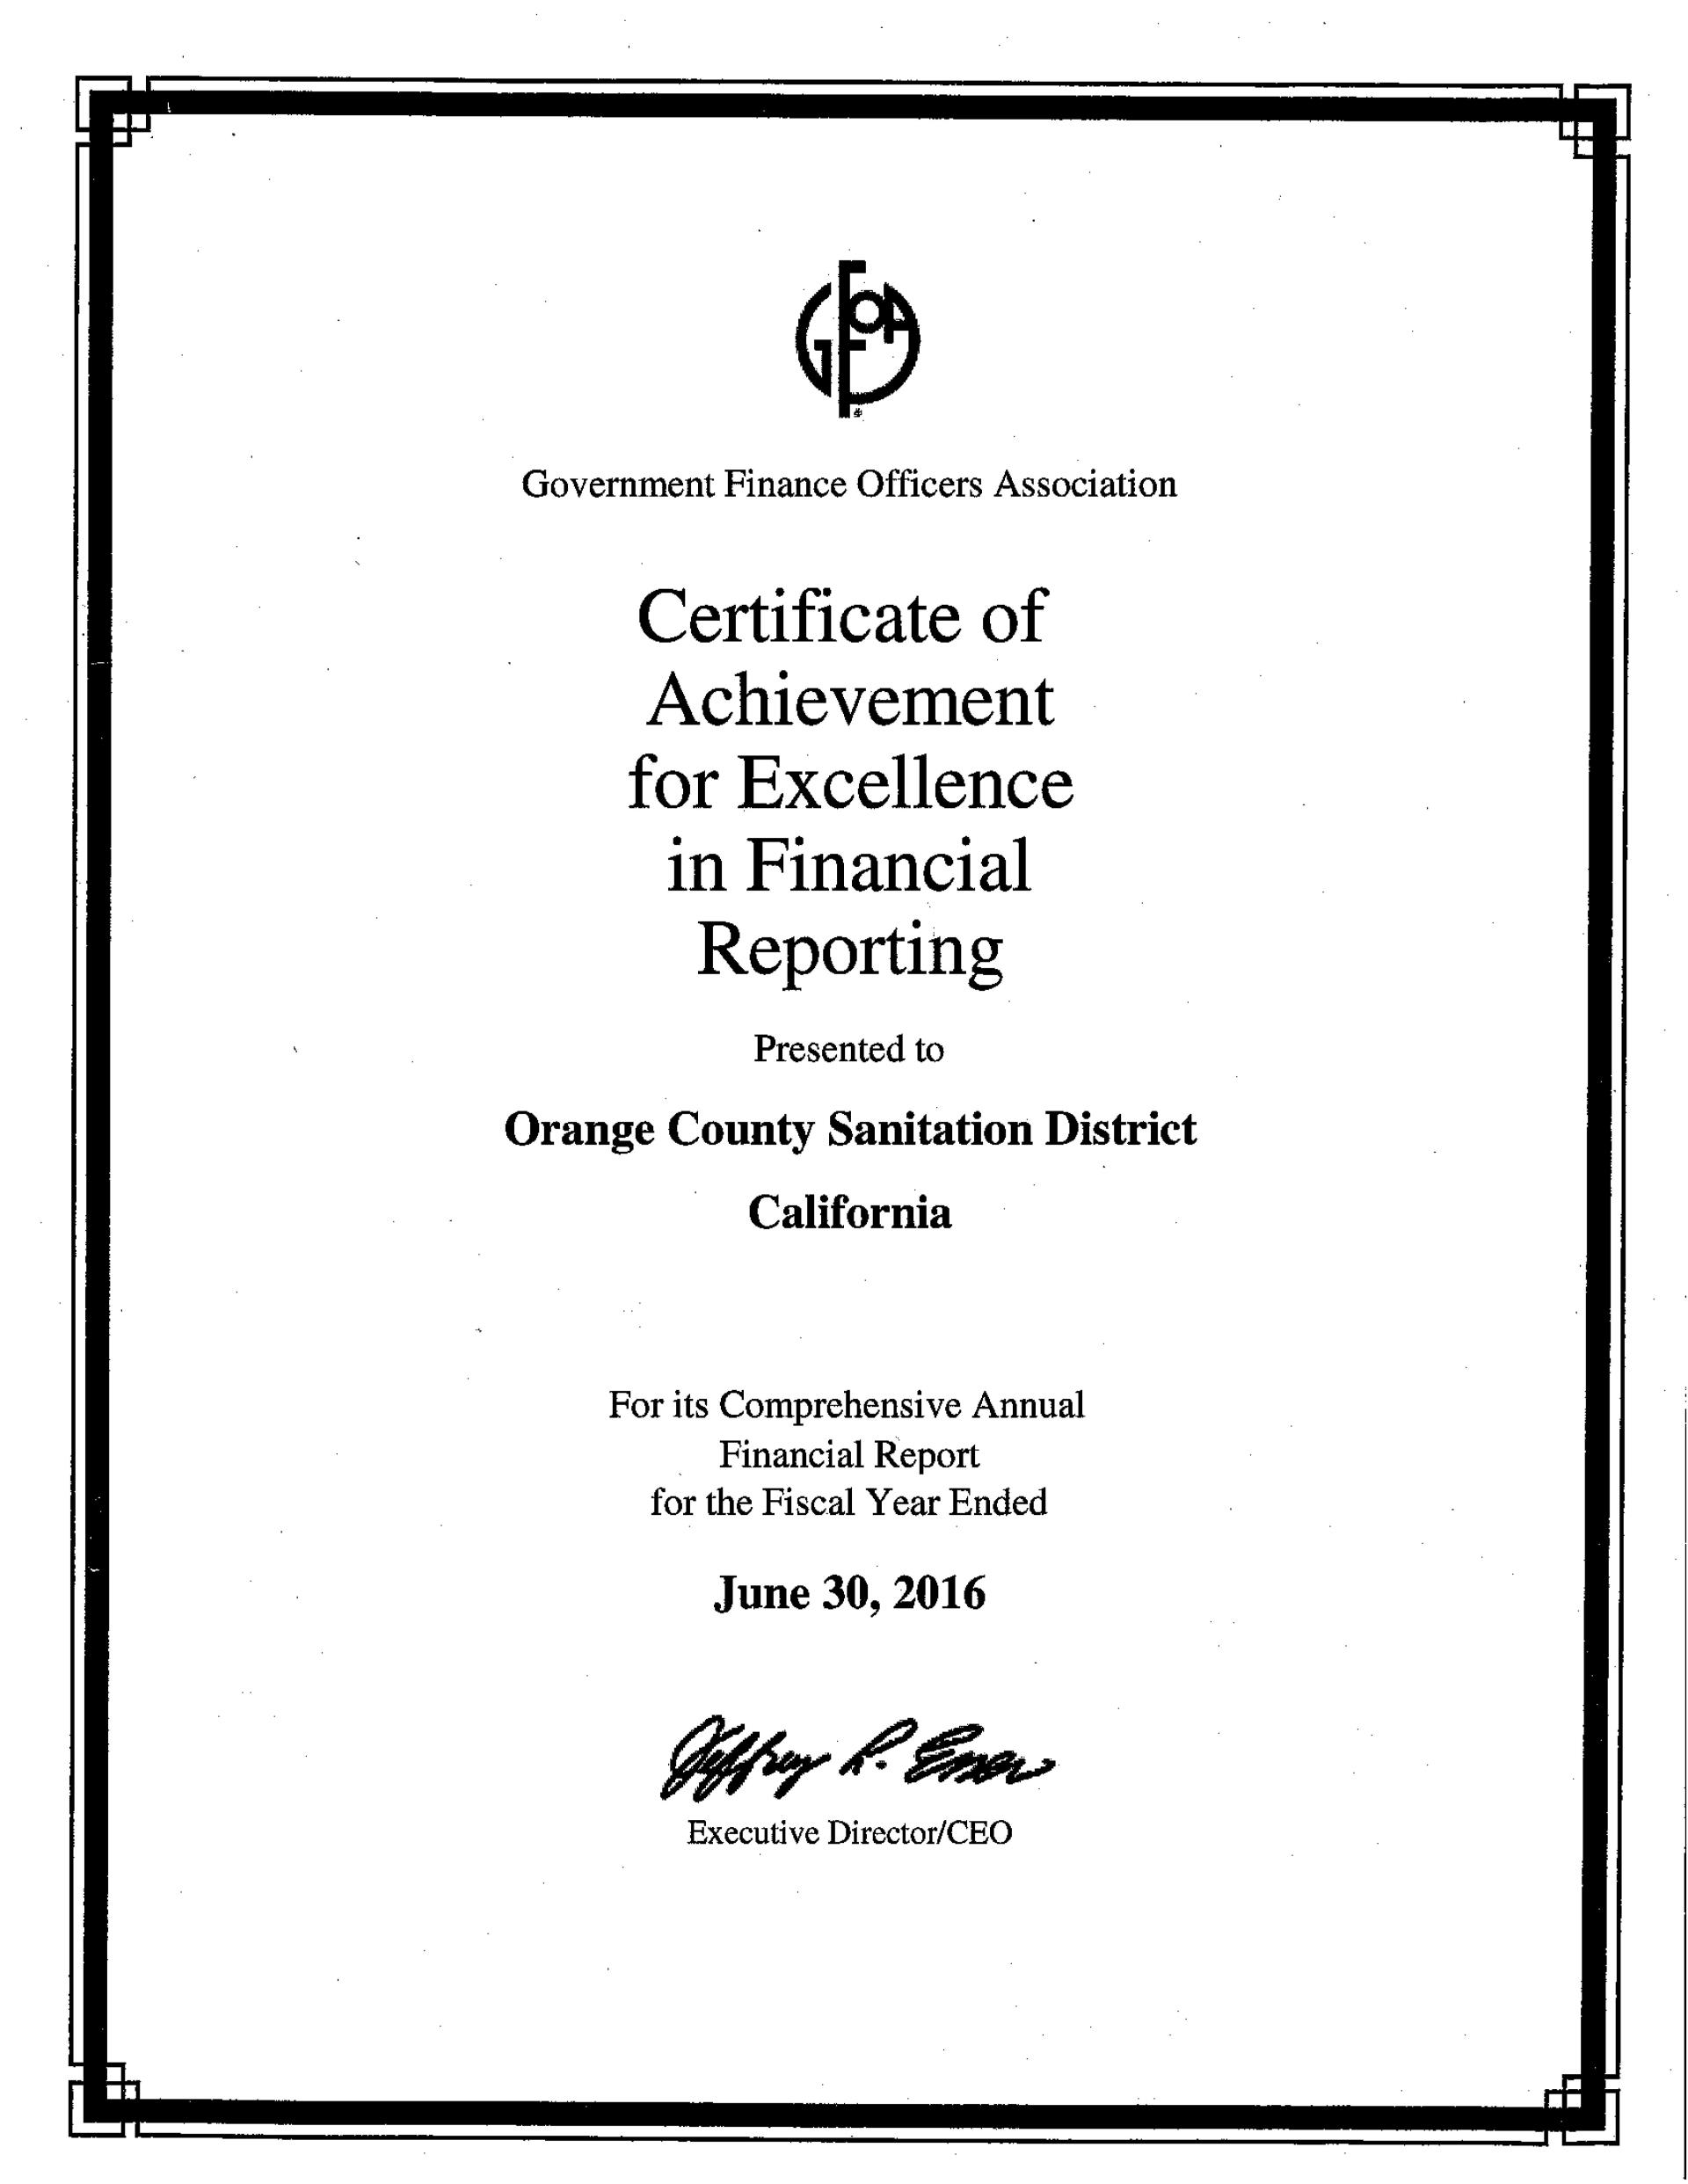 Ocsd Recognized For Excellence In Financial Reporting In The News